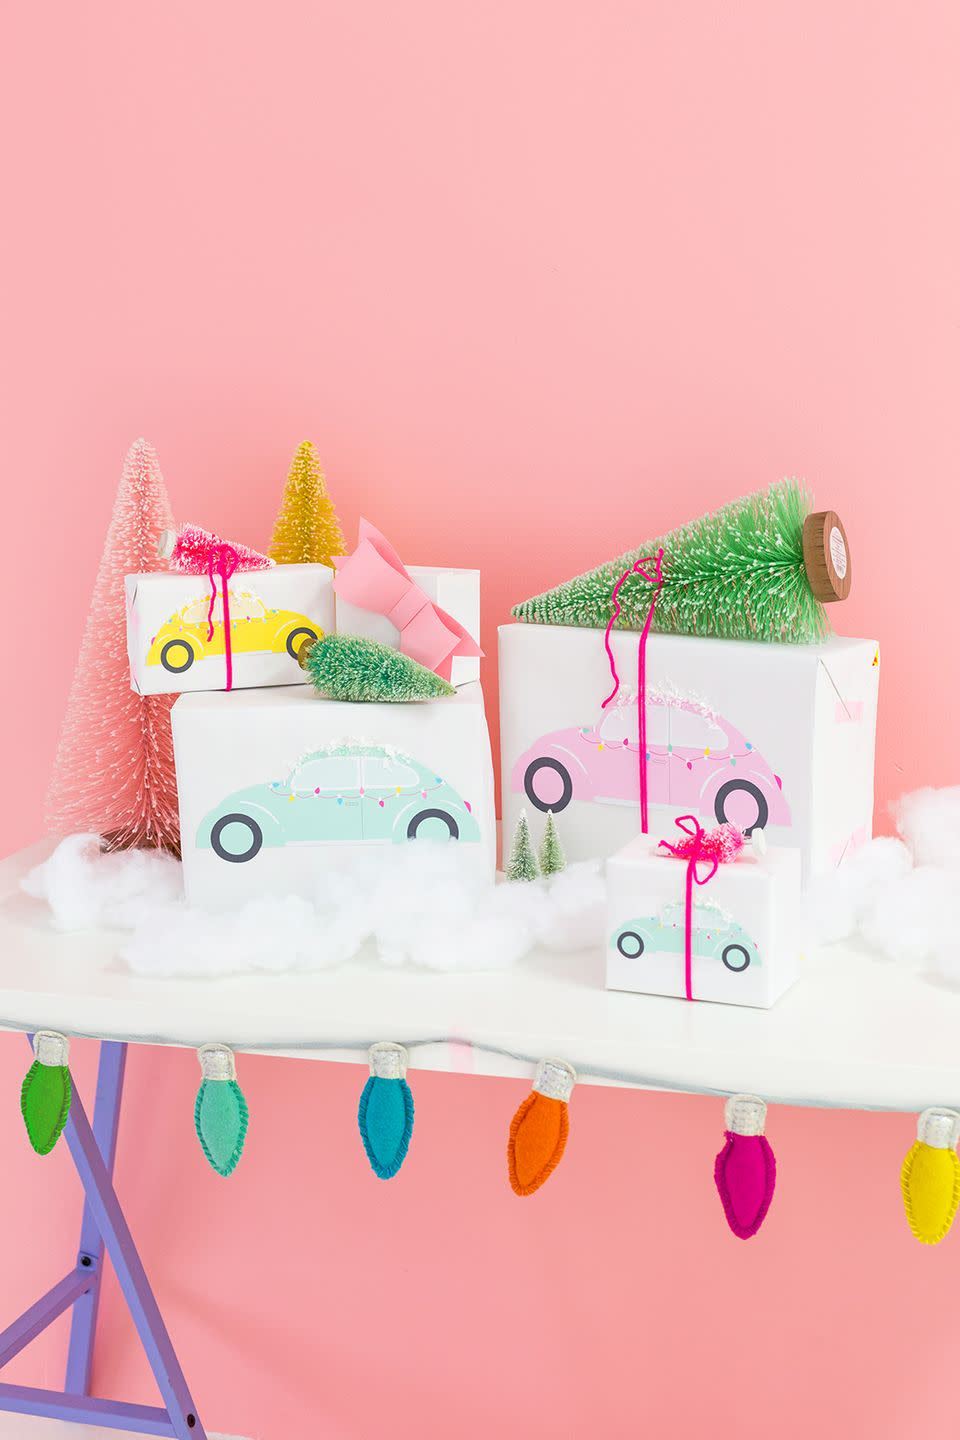 """<p>Combine a free retro car printable with an inexpensive bottle brush tree to create a super cute and unique gift wrap. </p><p>Get the tutorial at <a href=""""http://www.awwsam.com/2017/12/diy-bottle-brush-car-gift-wrap.html"""" rel=""""nofollow noopener"""" target=""""_blank"""" data-ylk=""""slk:Aww Sam"""" class=""""link rapid-noclick-resp"""">Aww Sam</a>.</p><p><a class=""""link rapid-noclick-resp"""" href=""""https://www.amazon.com/Whaline-Christmas-Artificial-Tabletop-Ornaments/dp/B081H2ZCWT?tag=syn-yahoo-20&ascsubtag=%5Bartid%7C10072.g.34015639%5Bsrc%7Cyahoo-us"""" rel=""""nofollow noopener"""" target=""""_blank"""" data-ylk=""""slk:SHOP BOTTLE BRUSH TREES"""">SHOP BOTTLE BRUSH TREES</a></p>"""